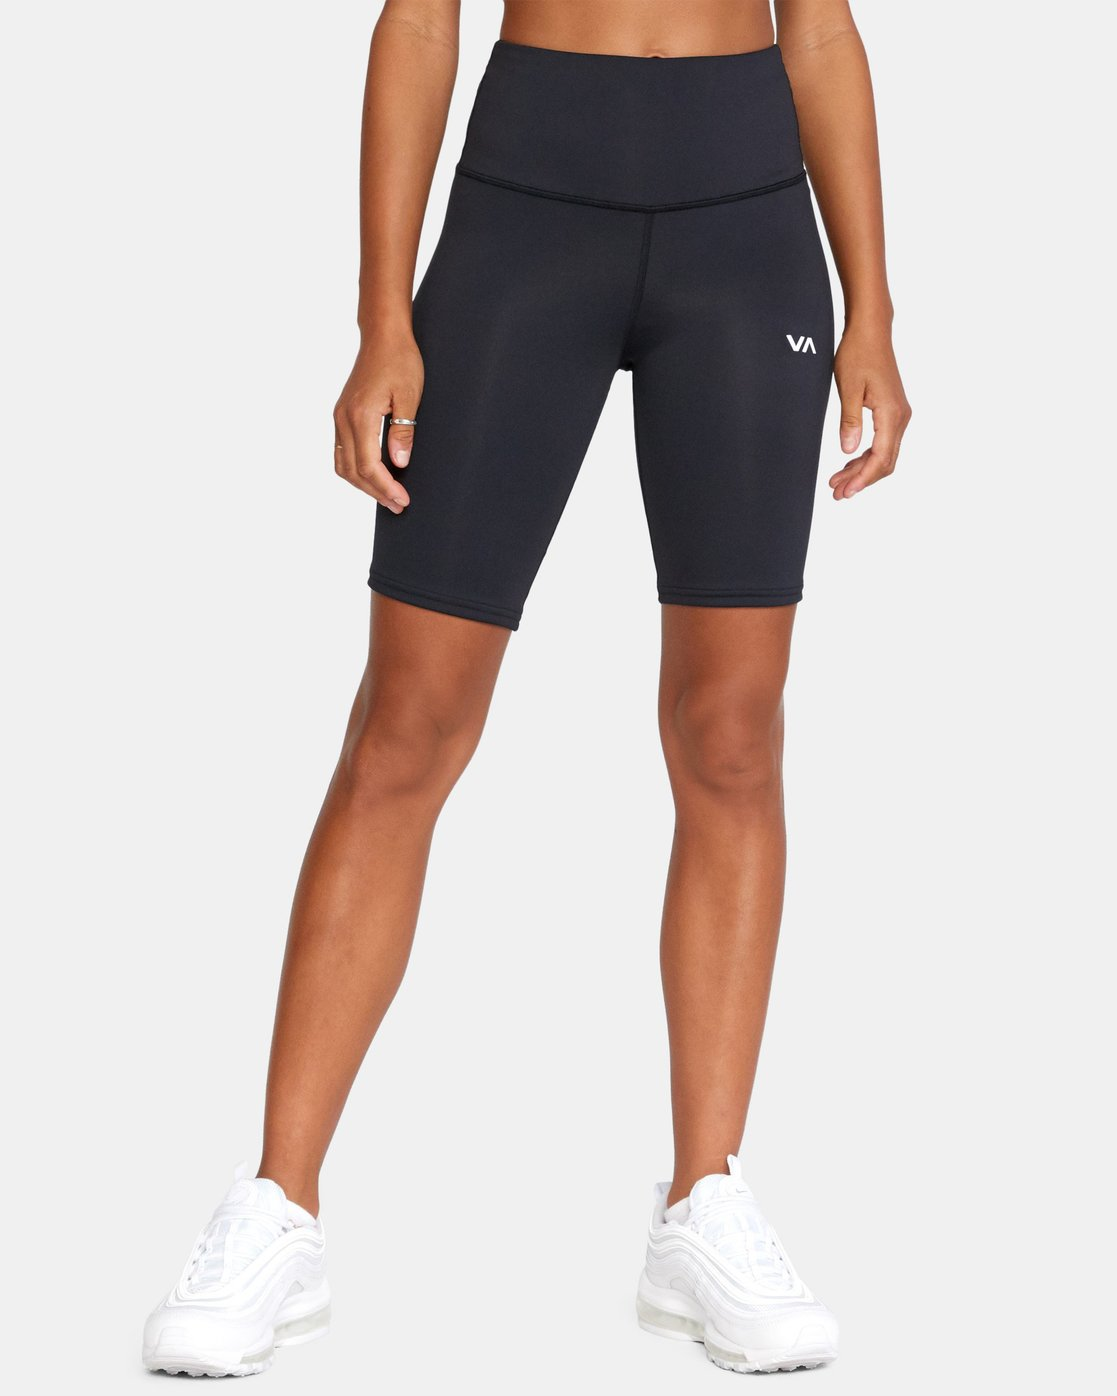 0 VA ESSENTIAL BIKE SHORT Black R417320 RVCA